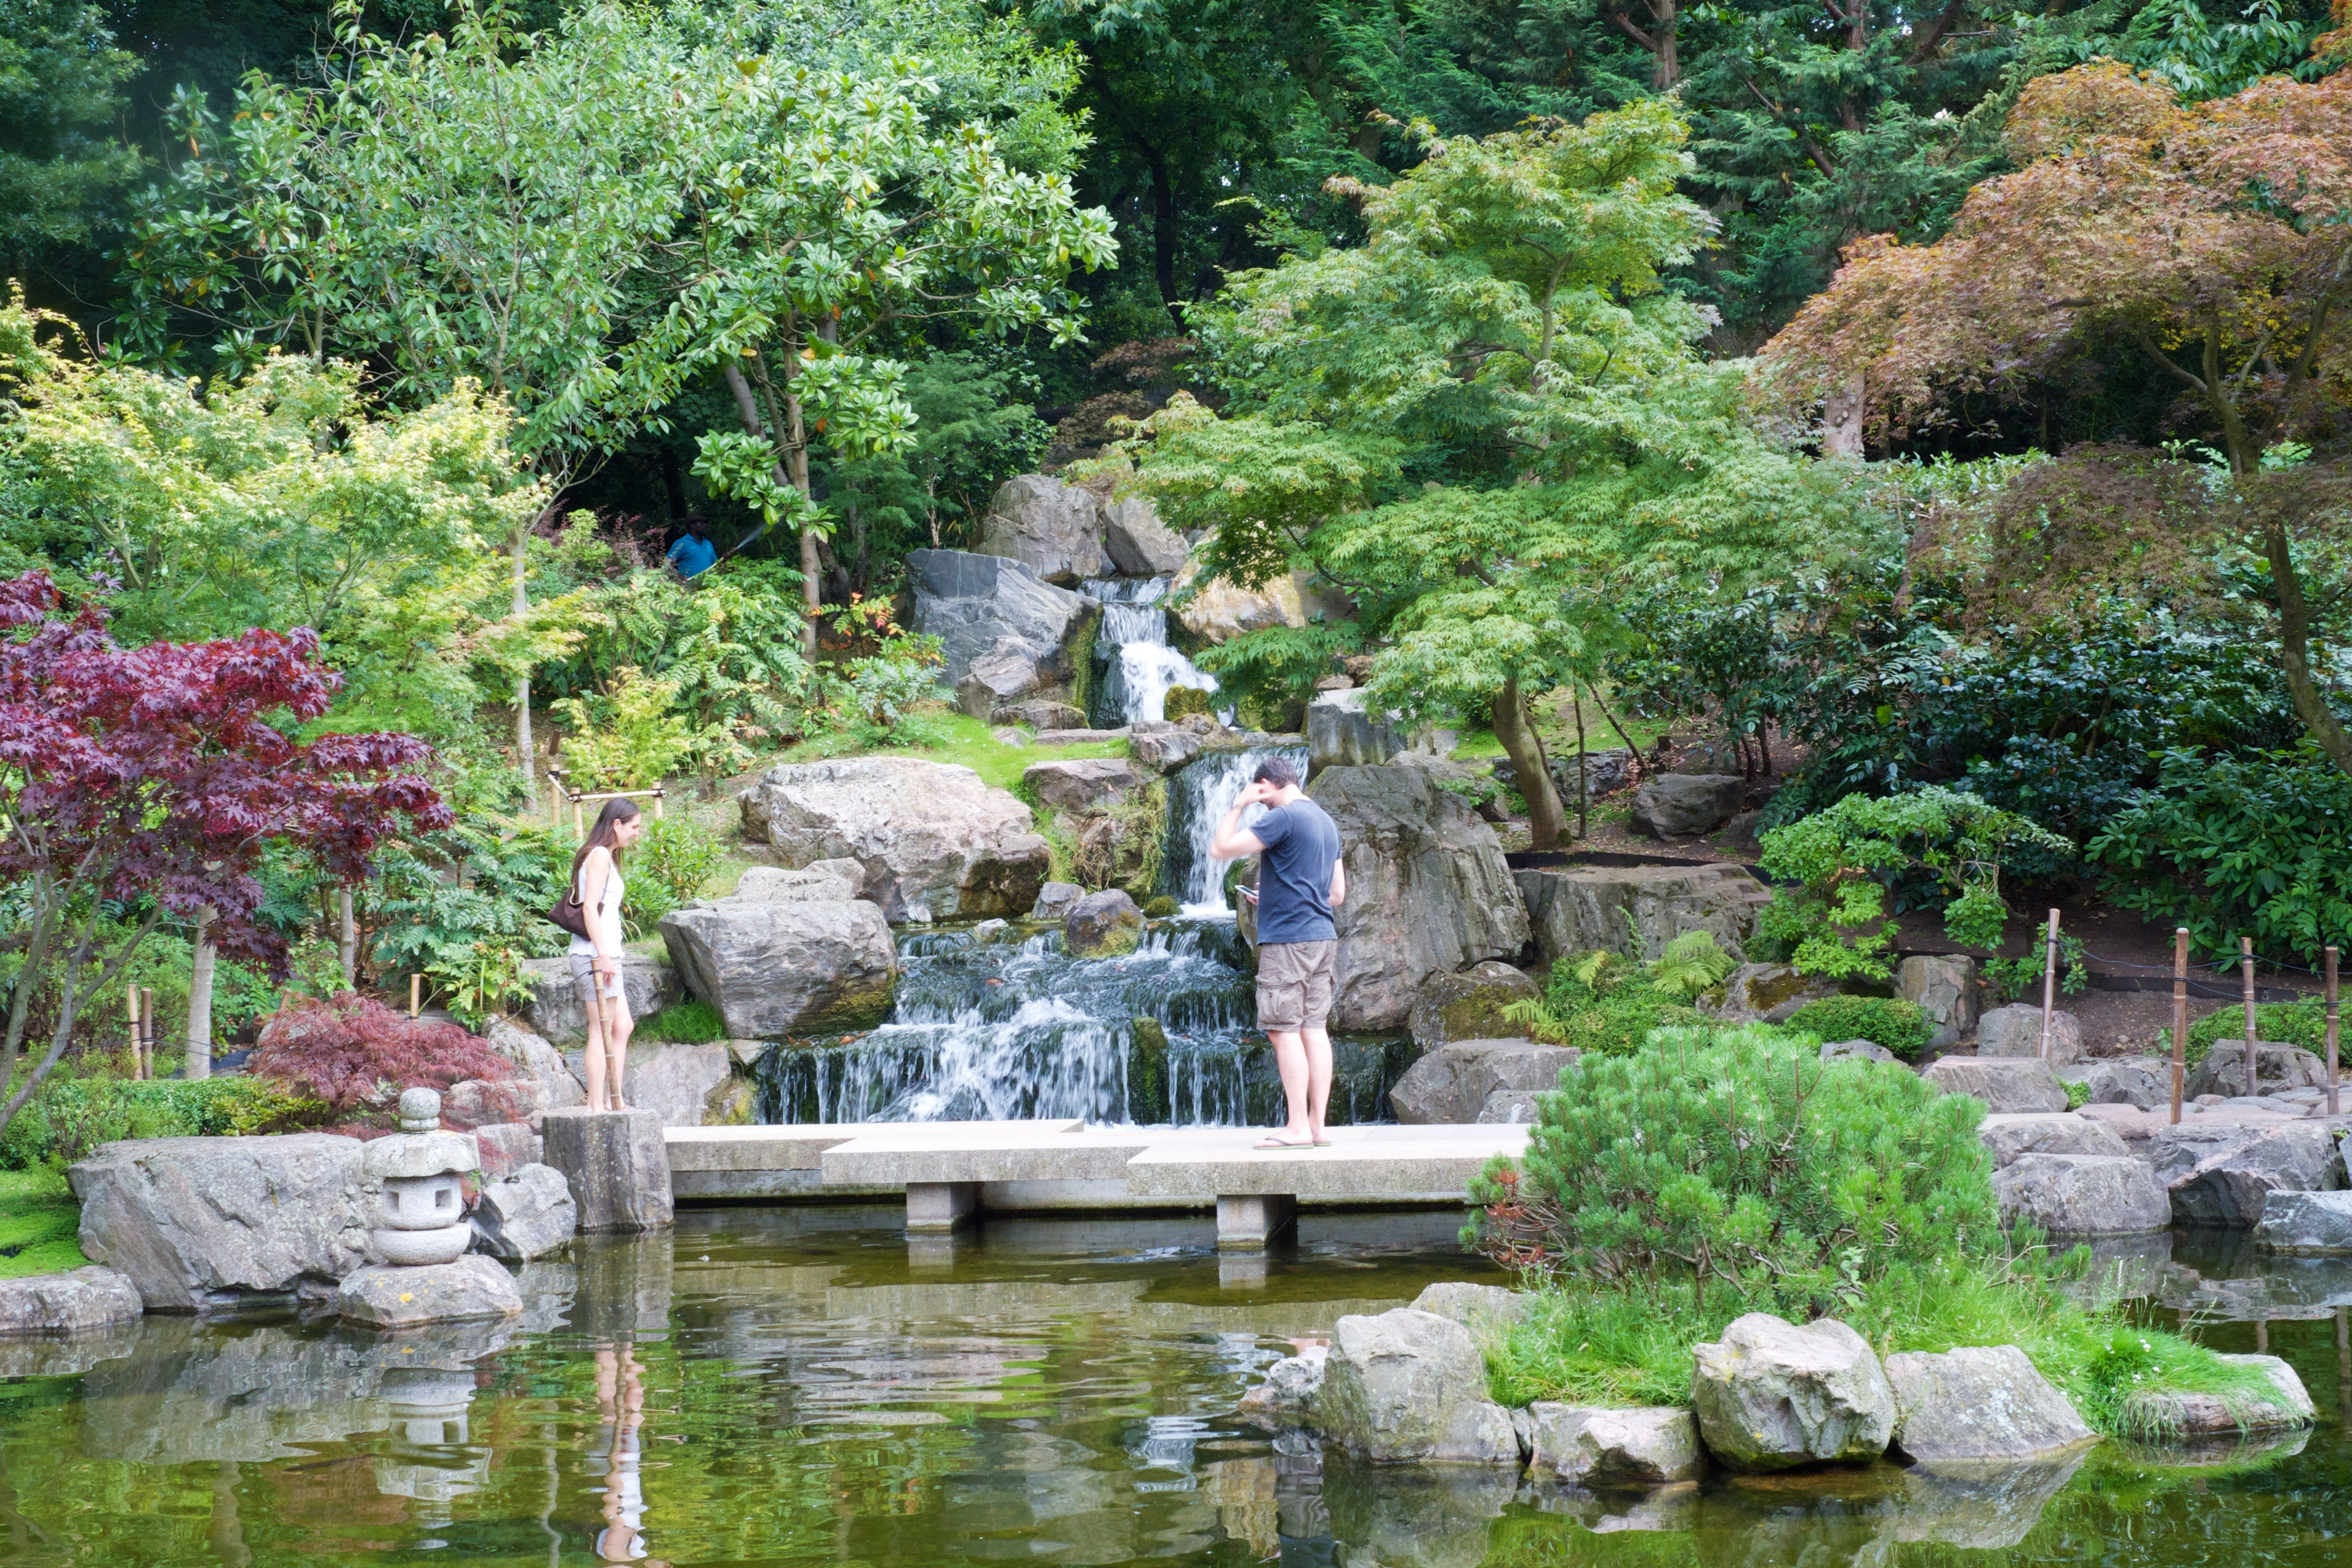 FilePeople On Bridge In Kyoto Gardens Holland Park London